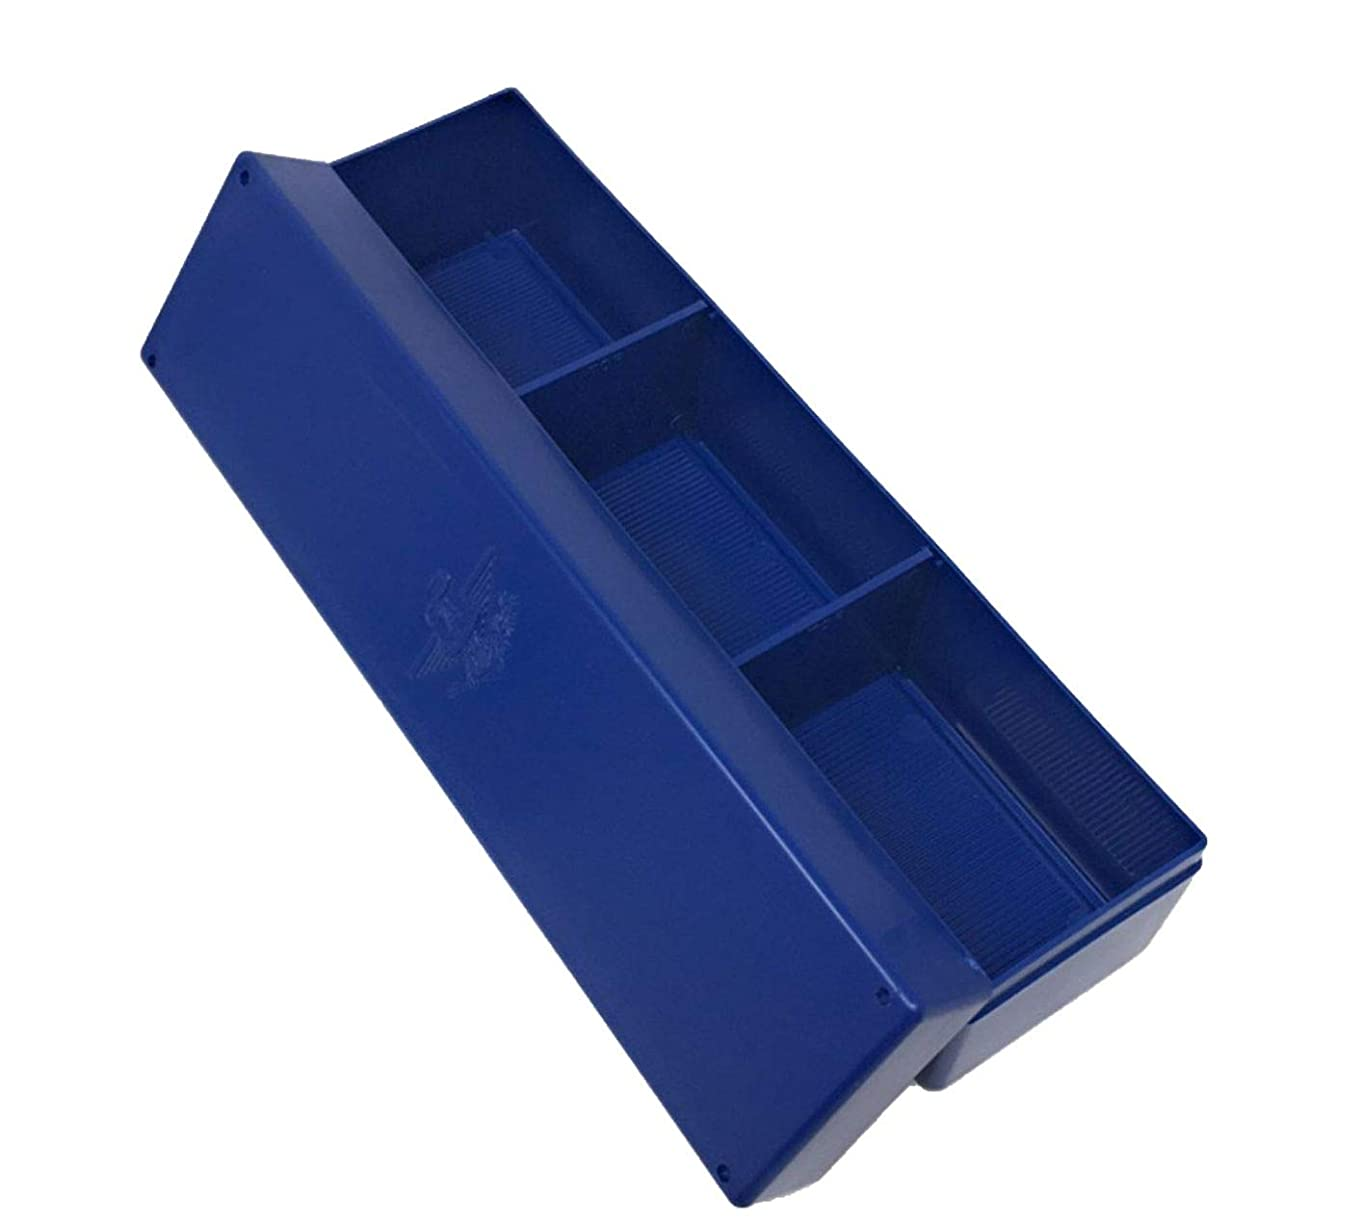 Plastic 2x2 Coin Storage Box